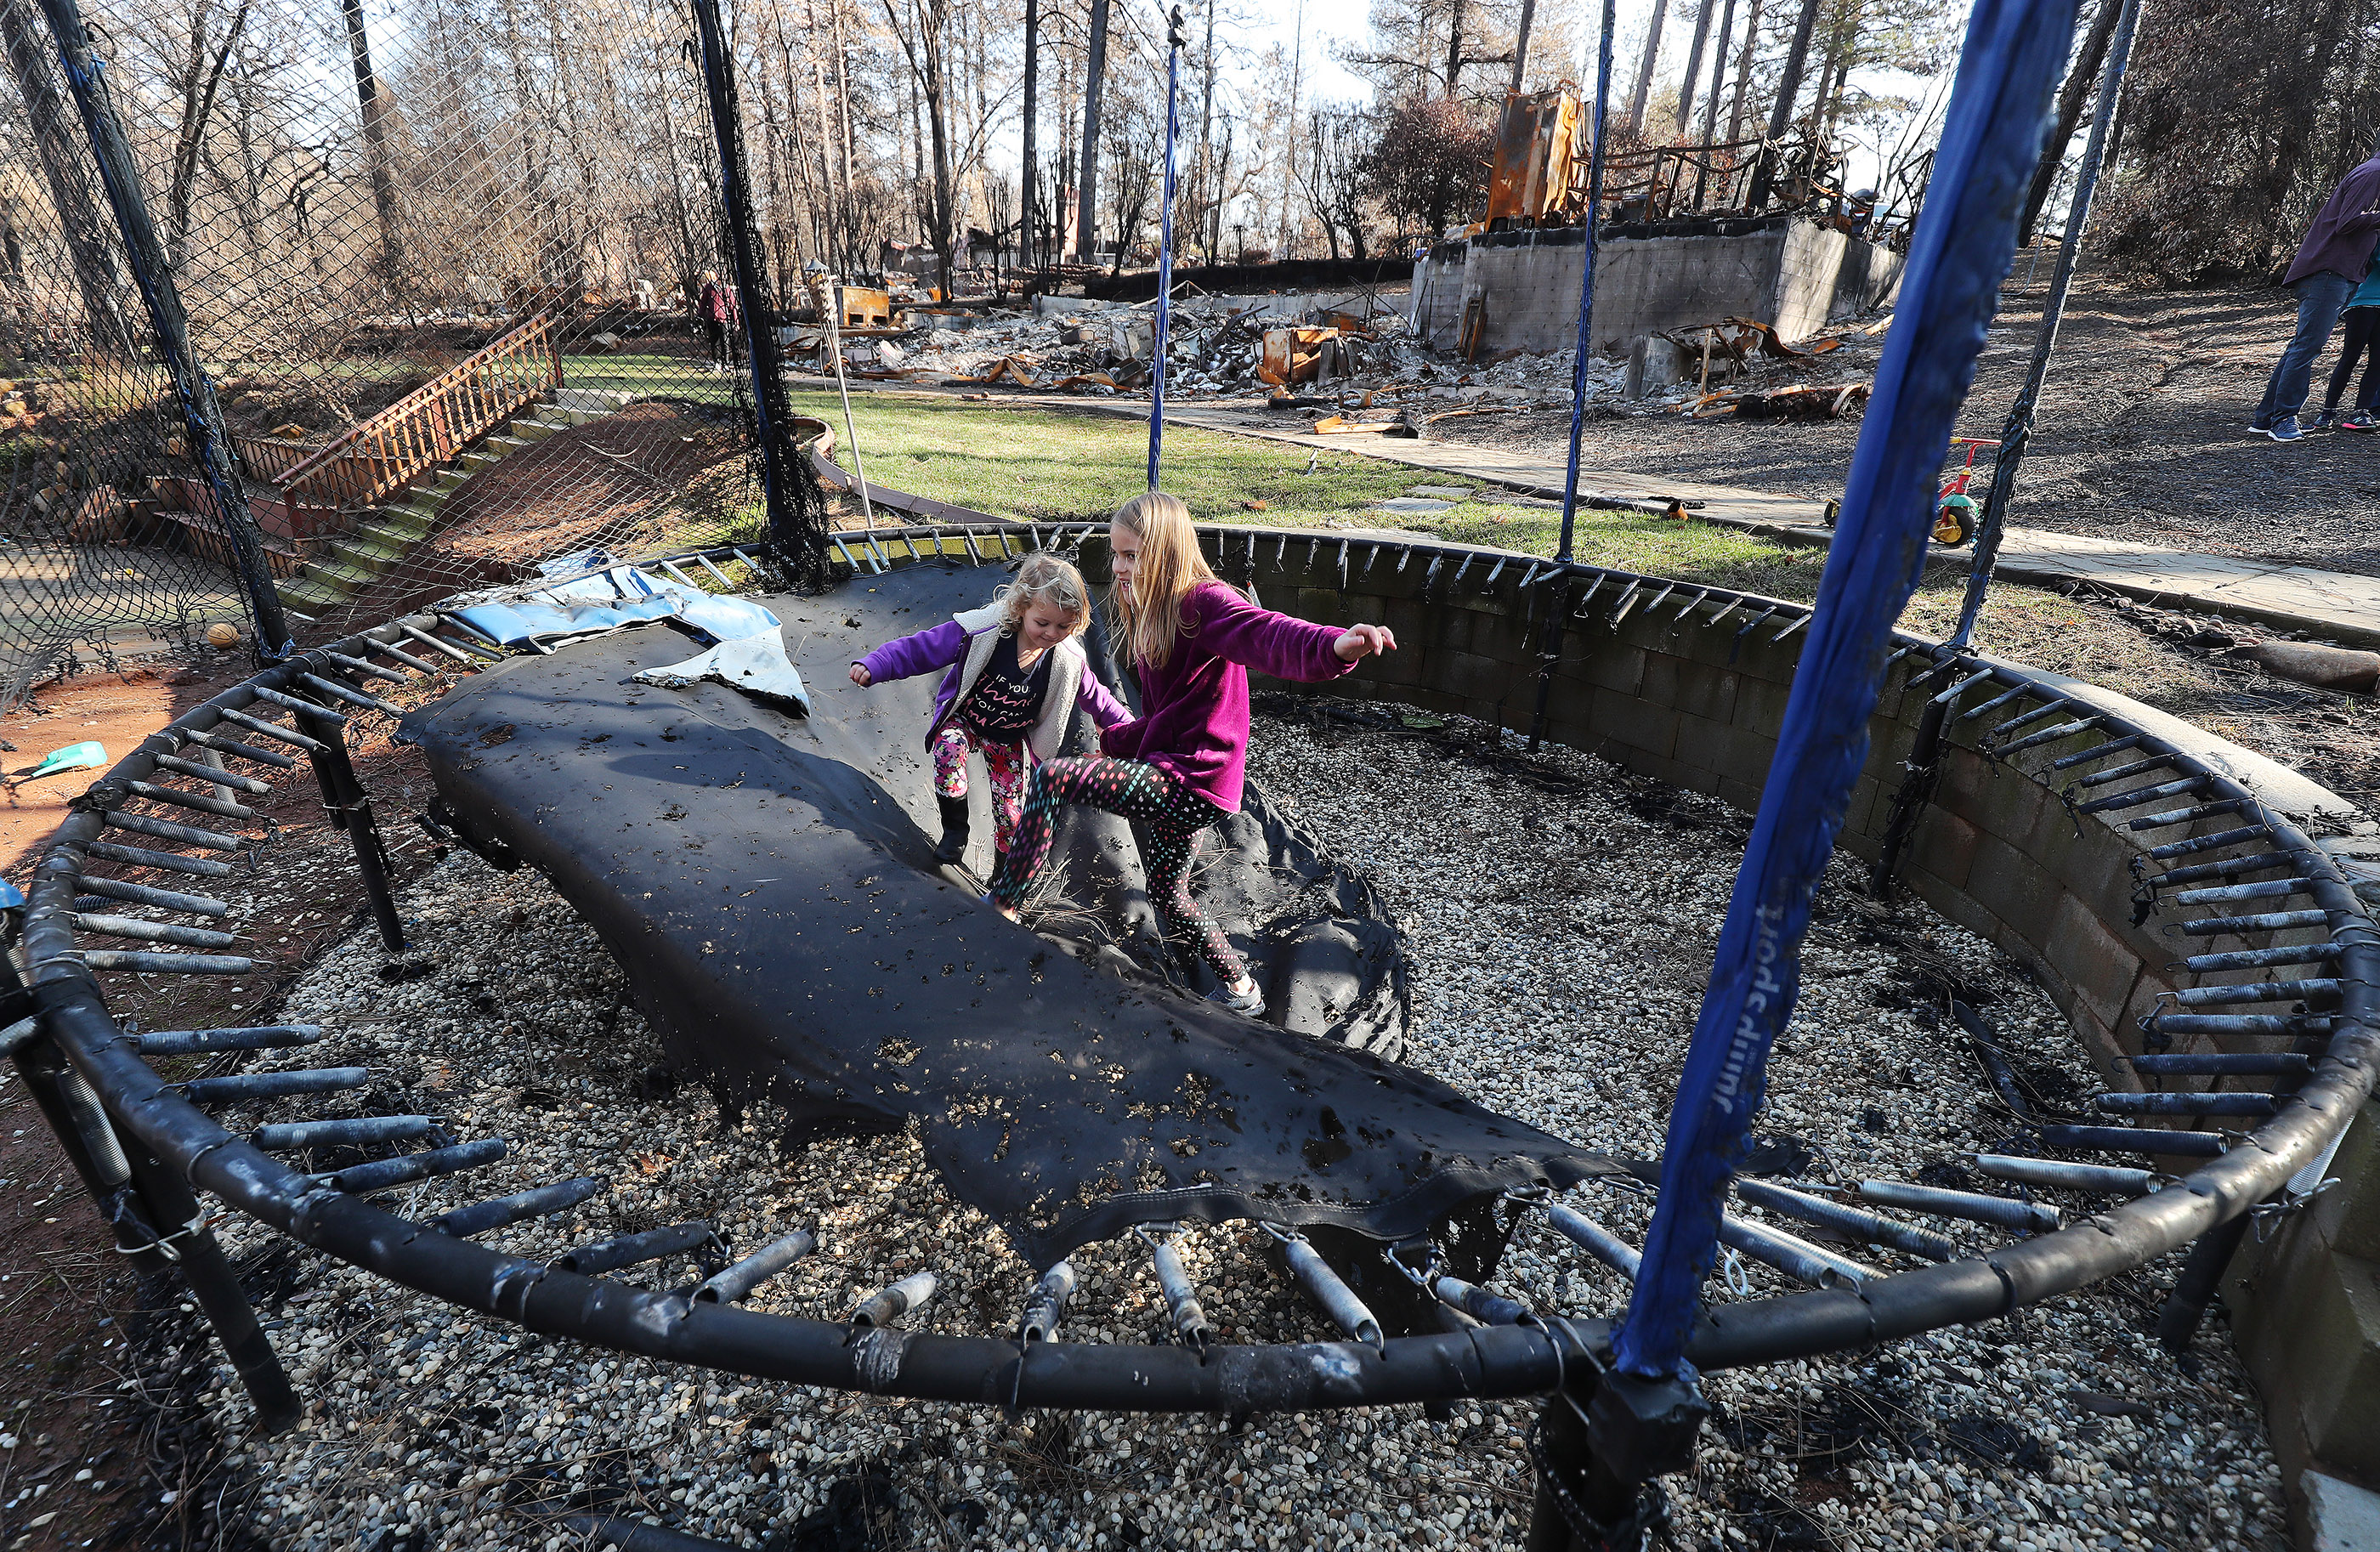 Aylee and DeLynn Chatfield play in their burned trampoline in Paradise, CA on Saturday, Jan. 12, 2019 two months after Campfire destroyed 1400 homes and hundreds of businesses.